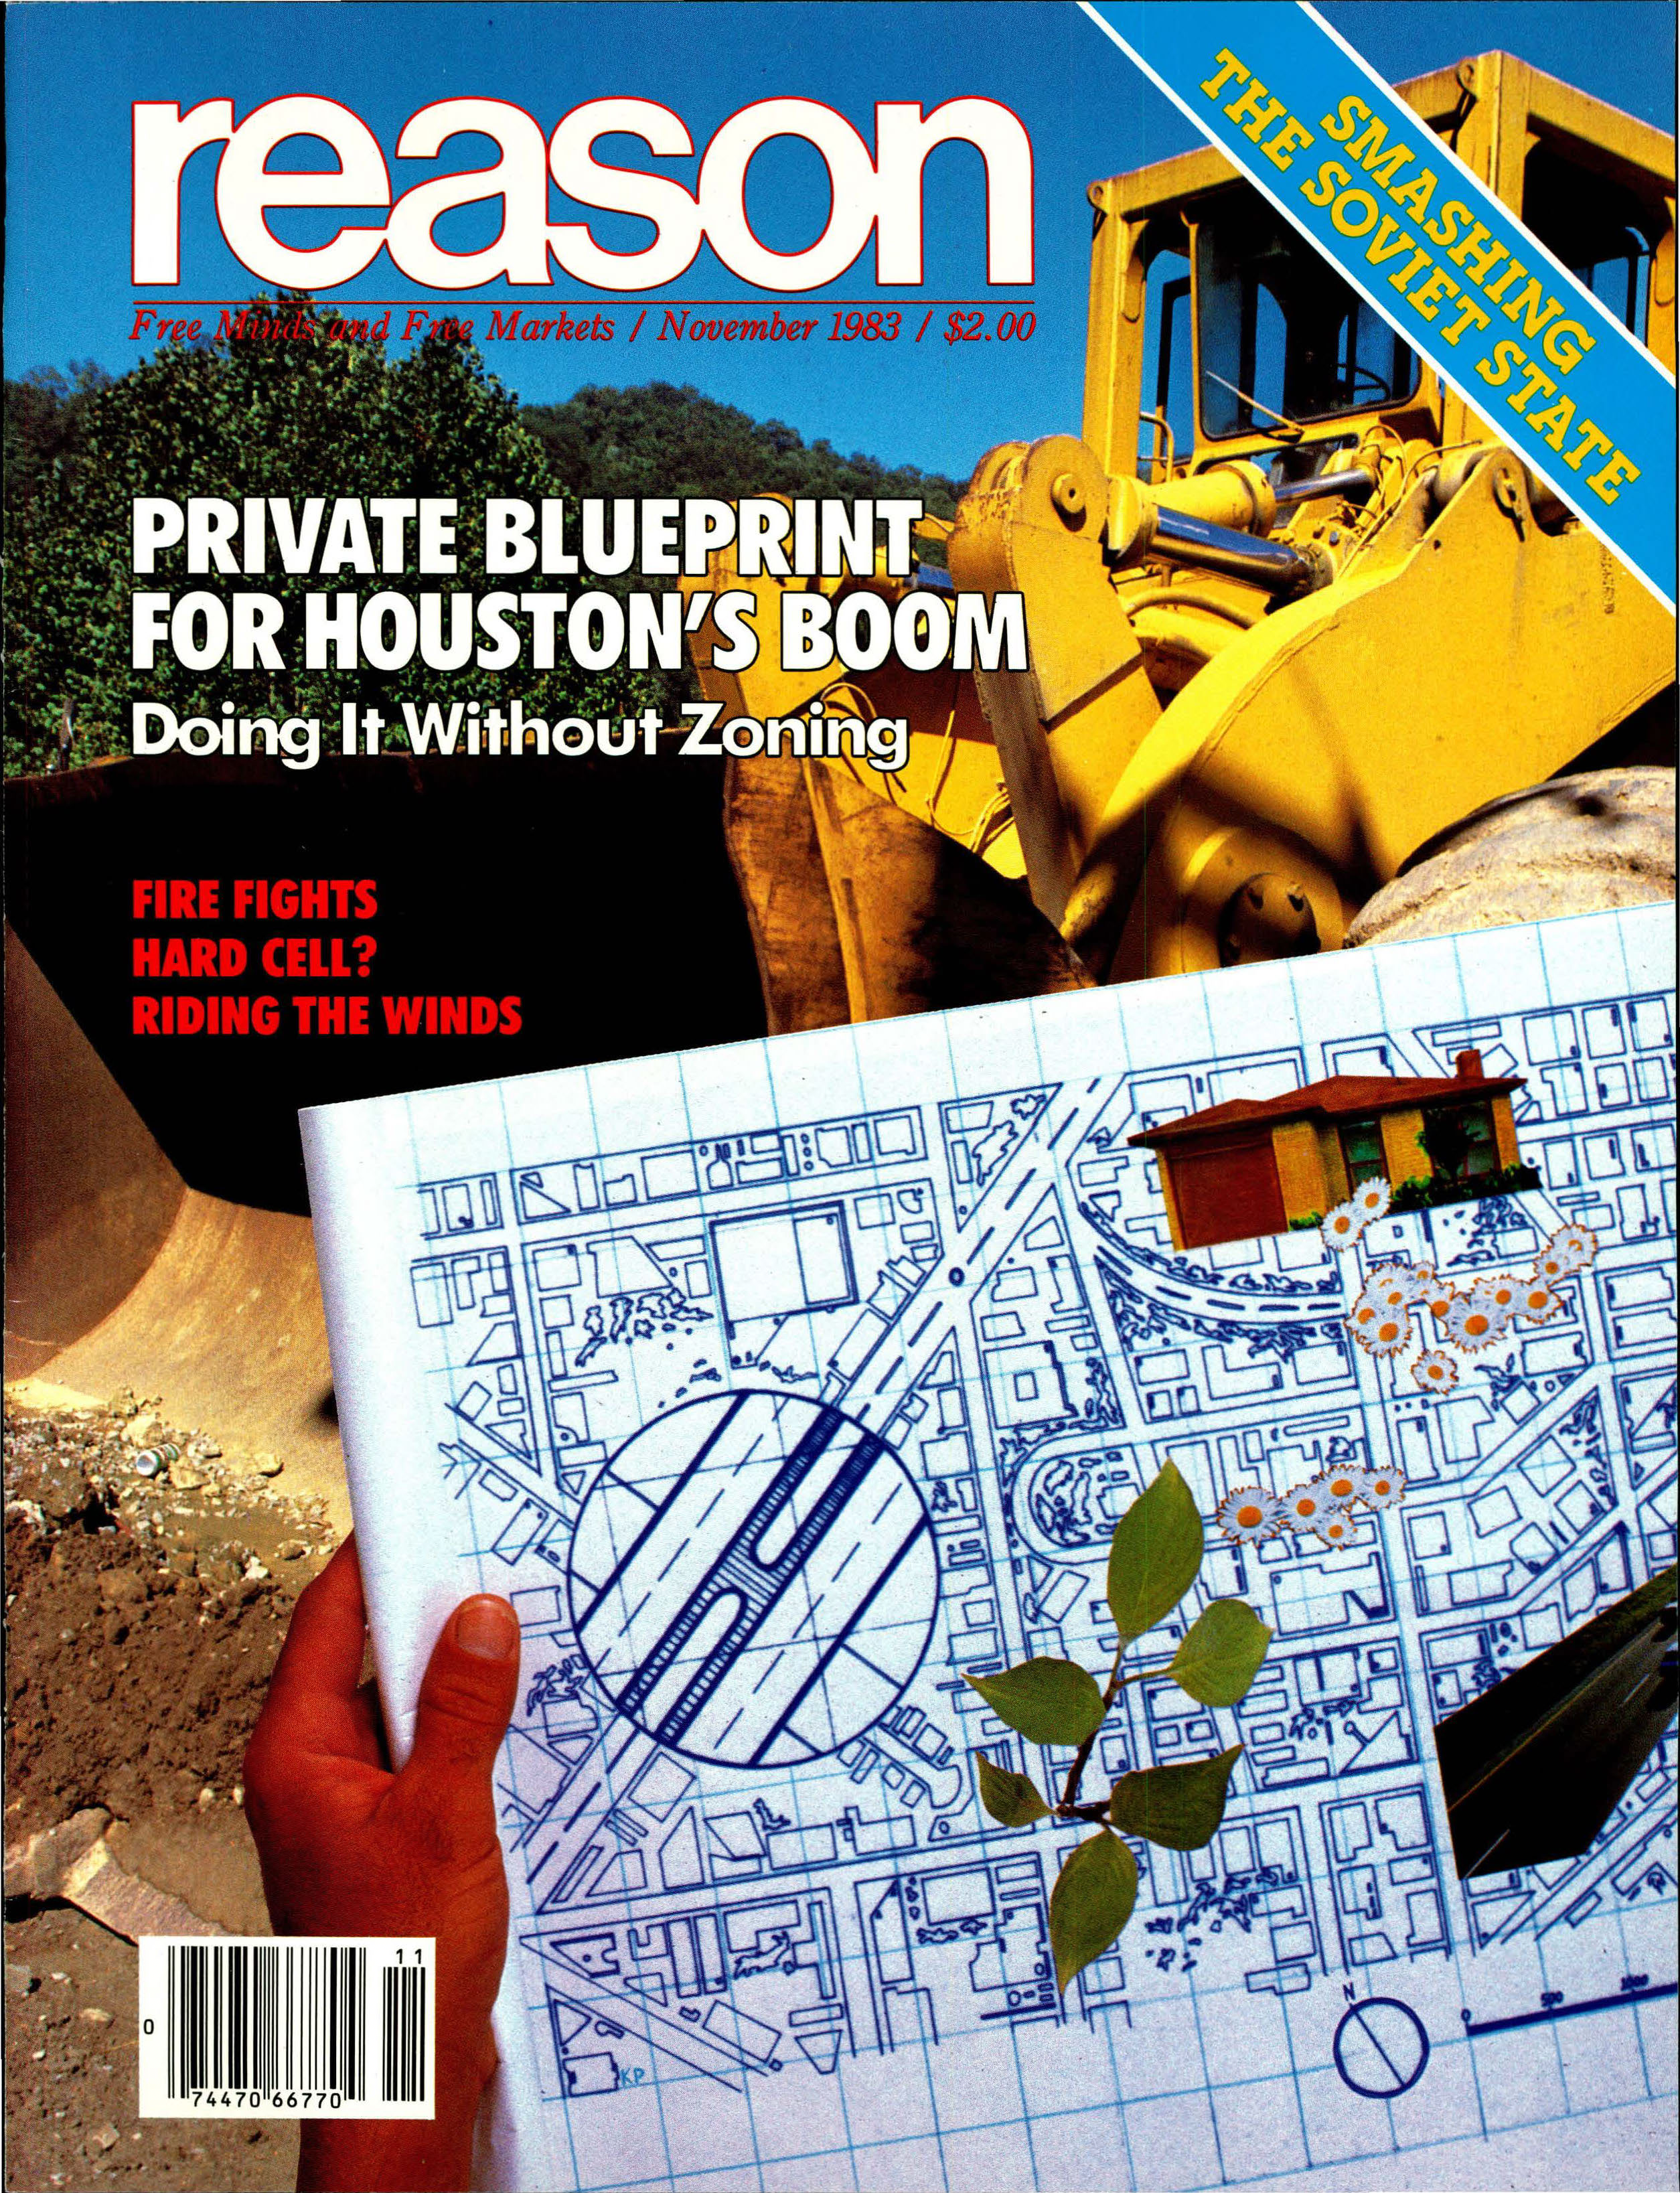 Reason Magazine, November 1983 cover image